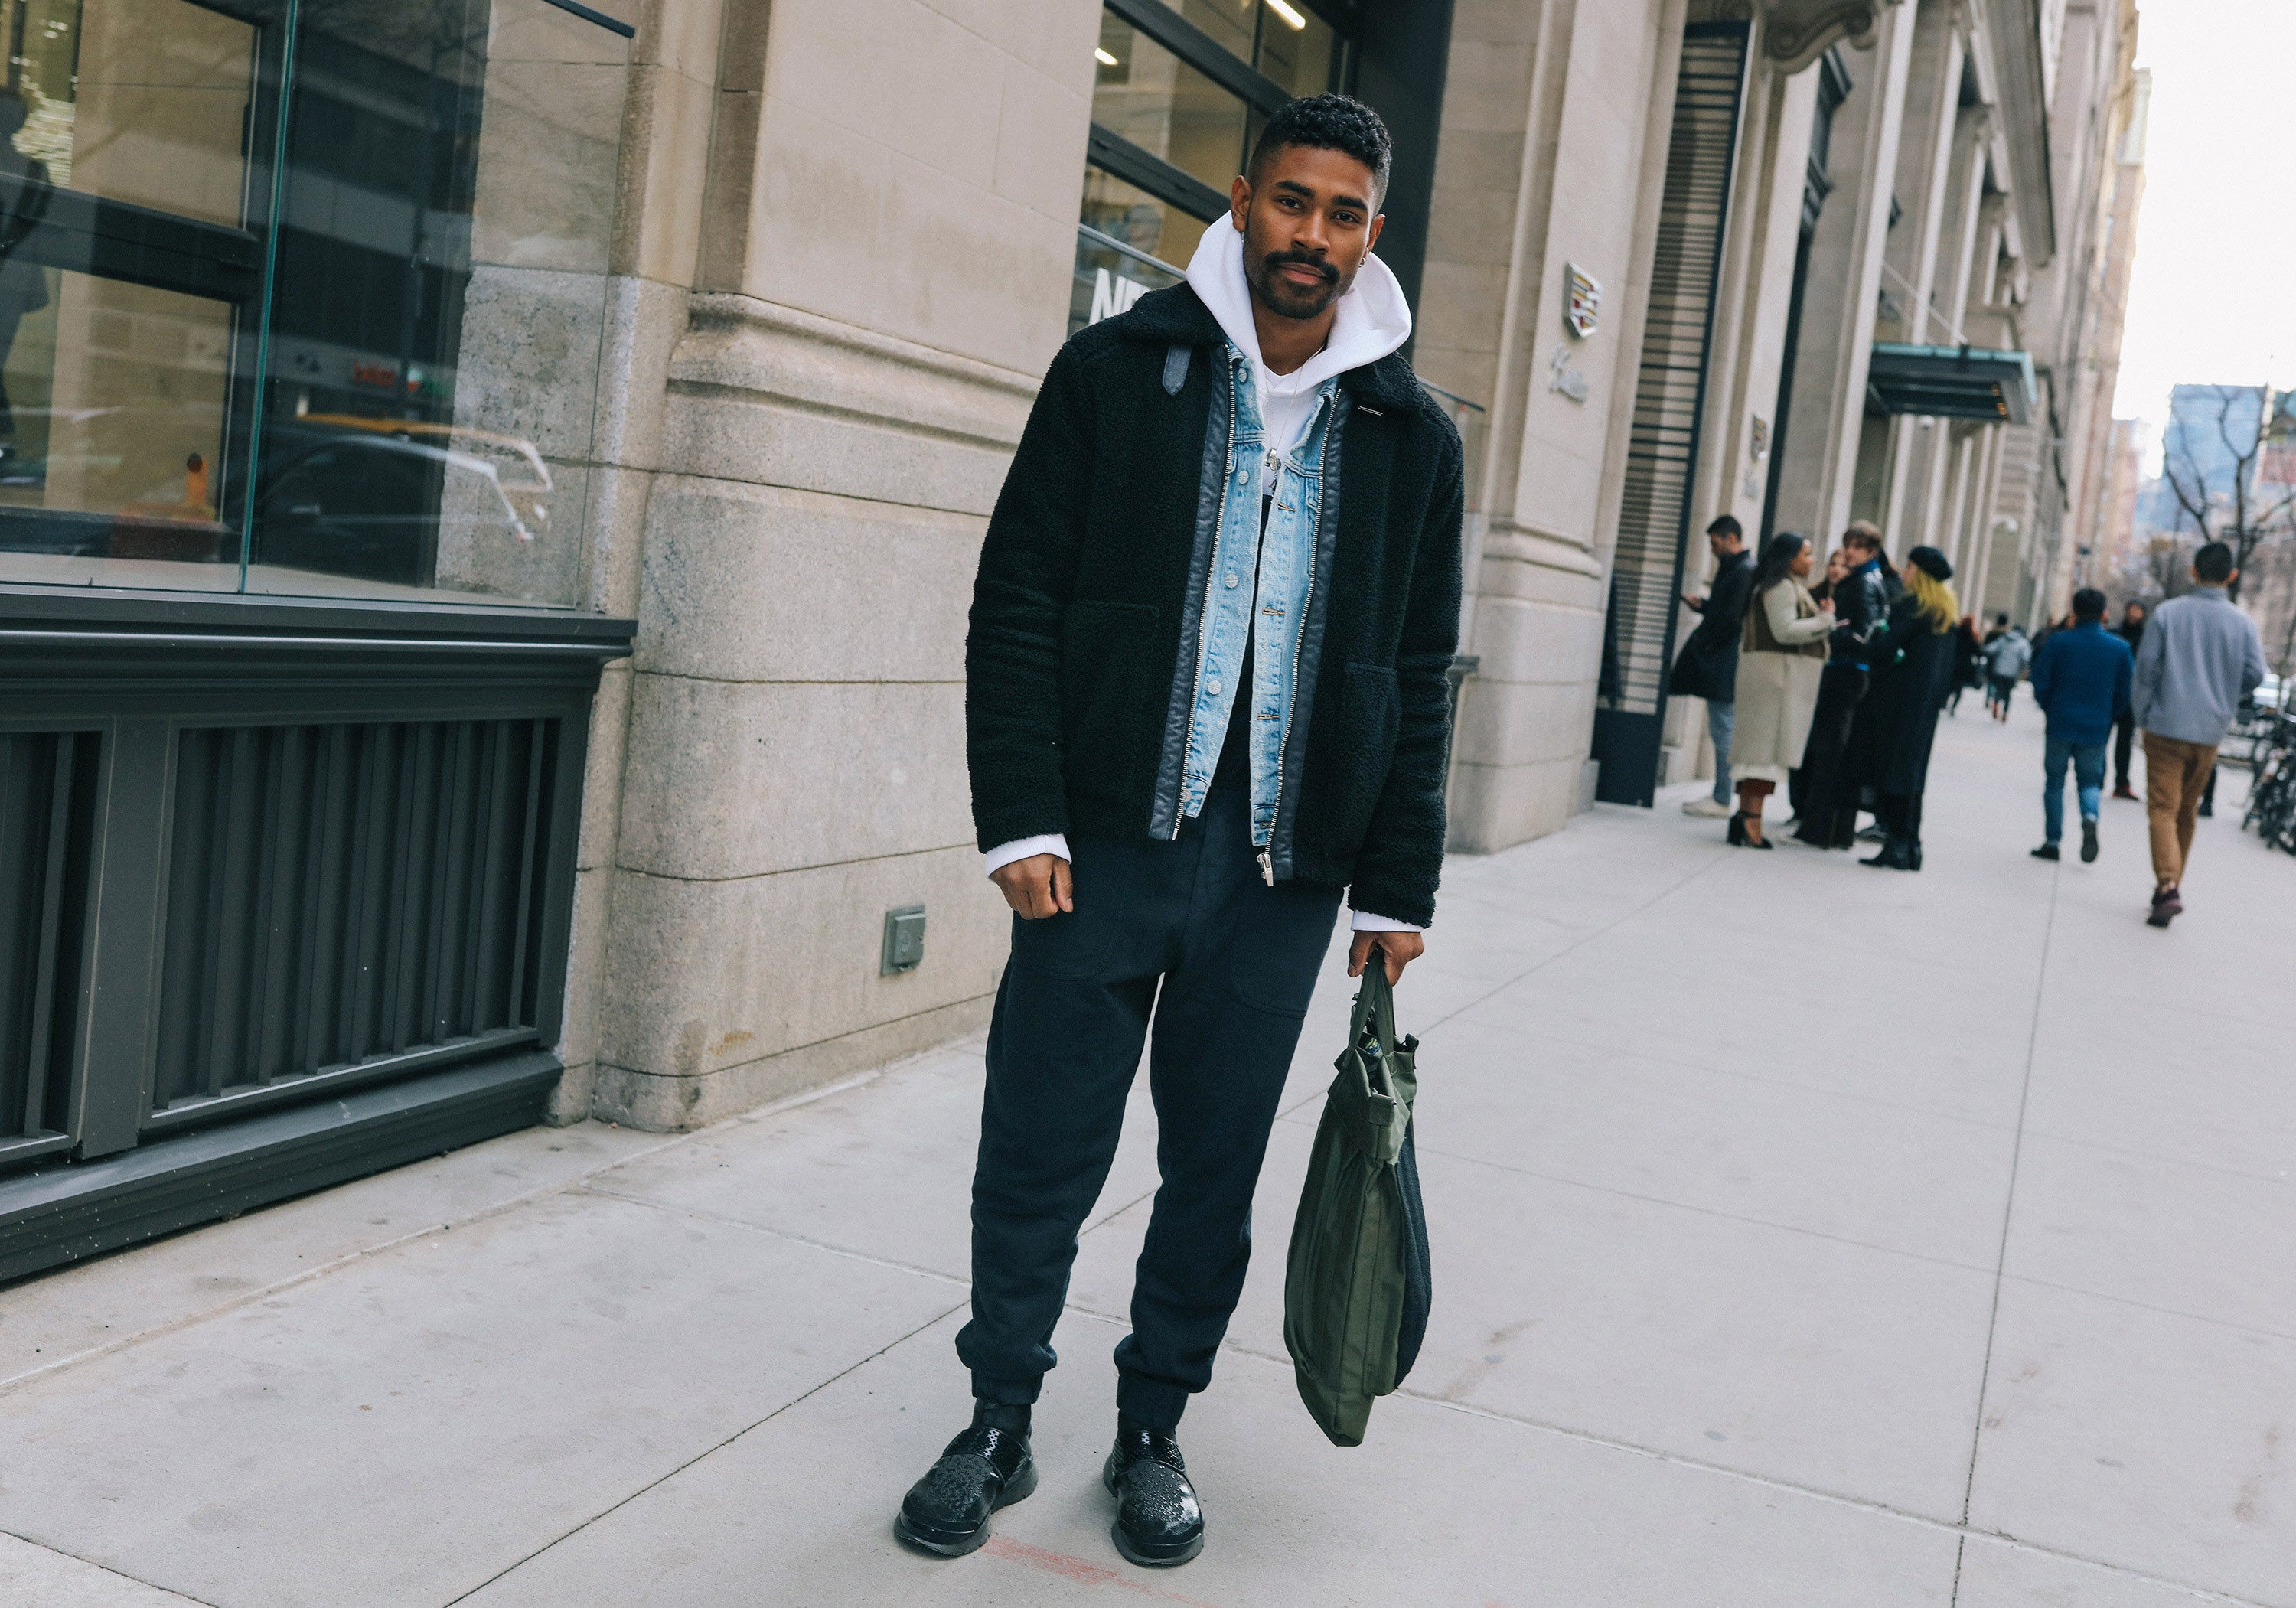 http://assets.vogue.com/photos/58936571f1b0e7f31c92d5f5/master/pass/27-phil-oh-mens-nyfw-day-2-2017.jpg